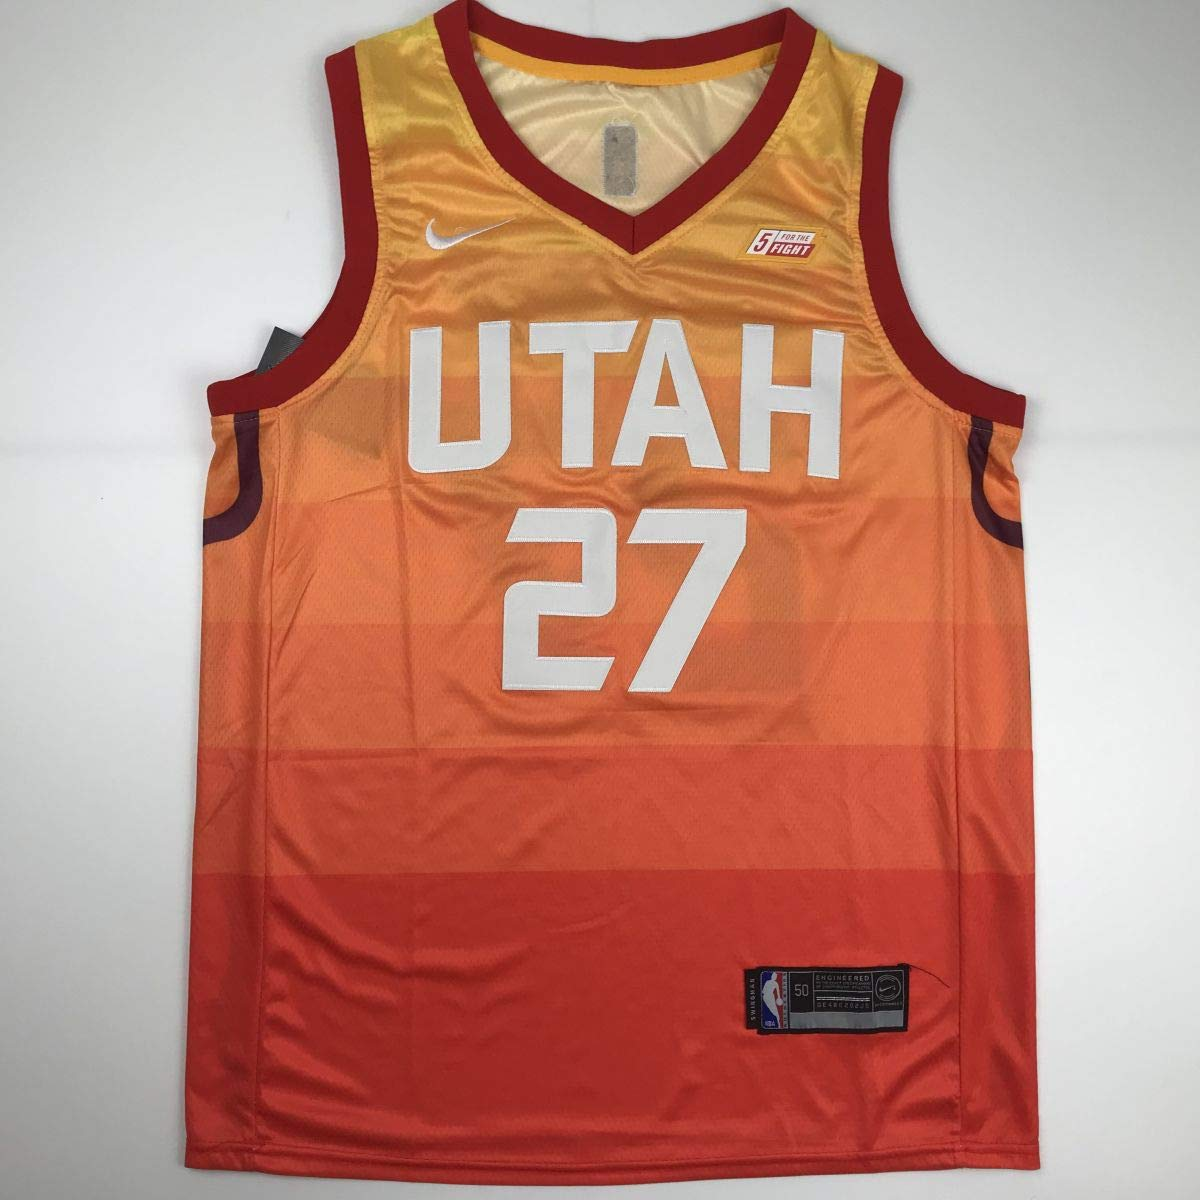 152952e2a Autographed Signed Rudy Gobert Utah Orange Basketball Jersey JSA COA at  Amazon s Sports Collectibles Store